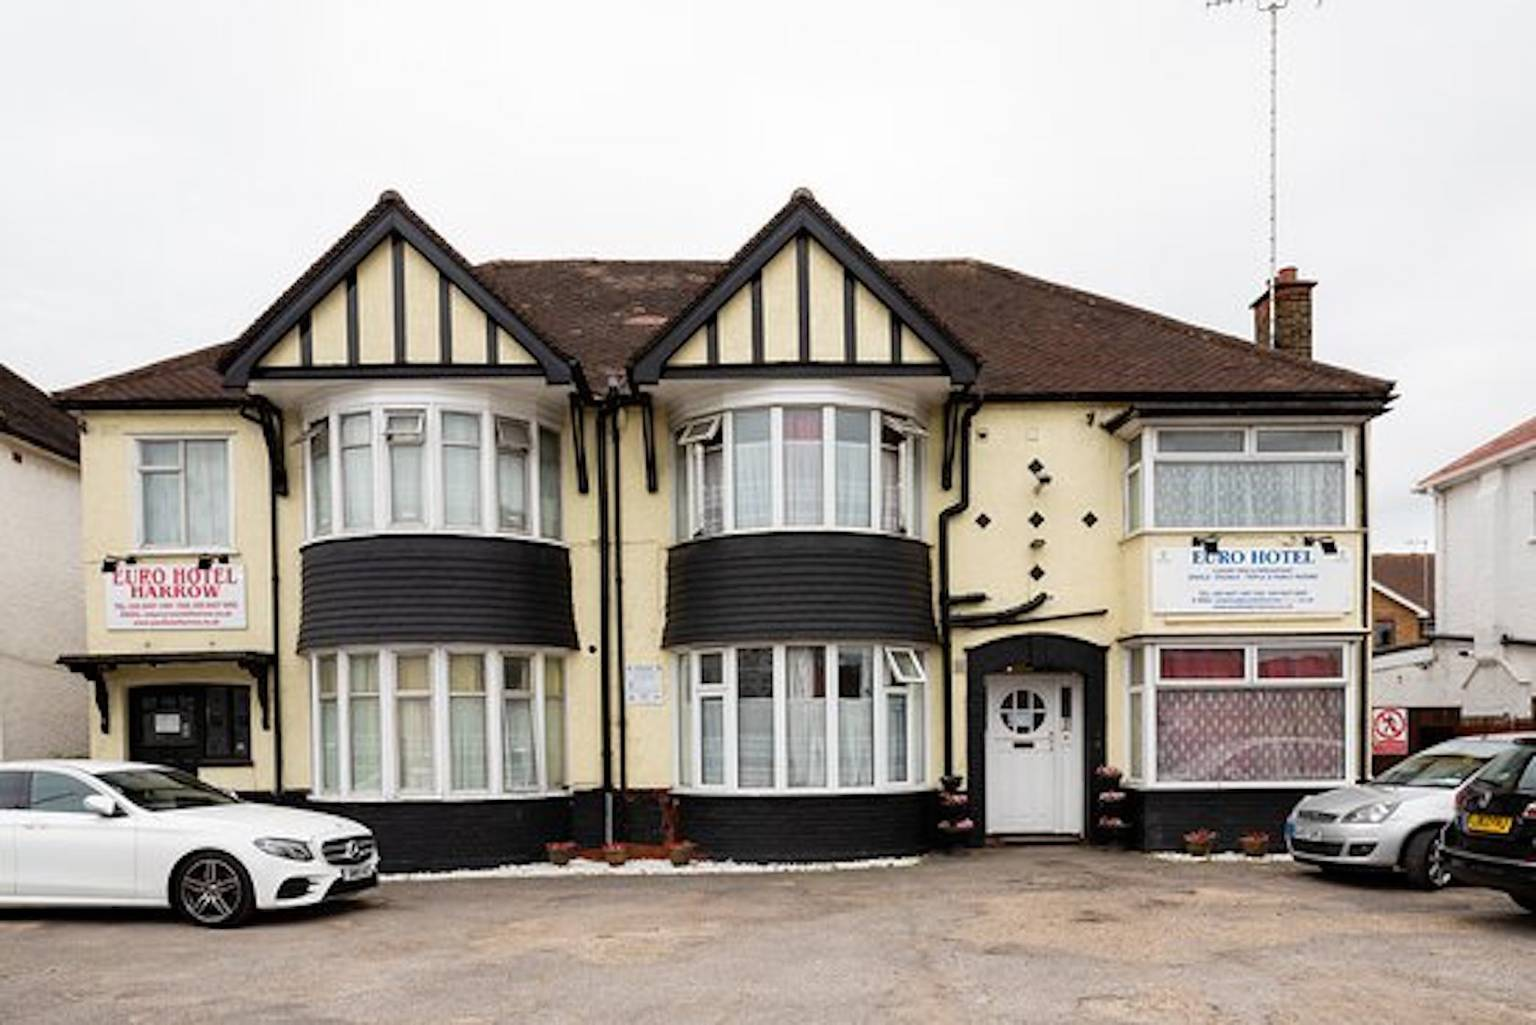 A car parked in front of a house at EURO HOTEL HARROW.